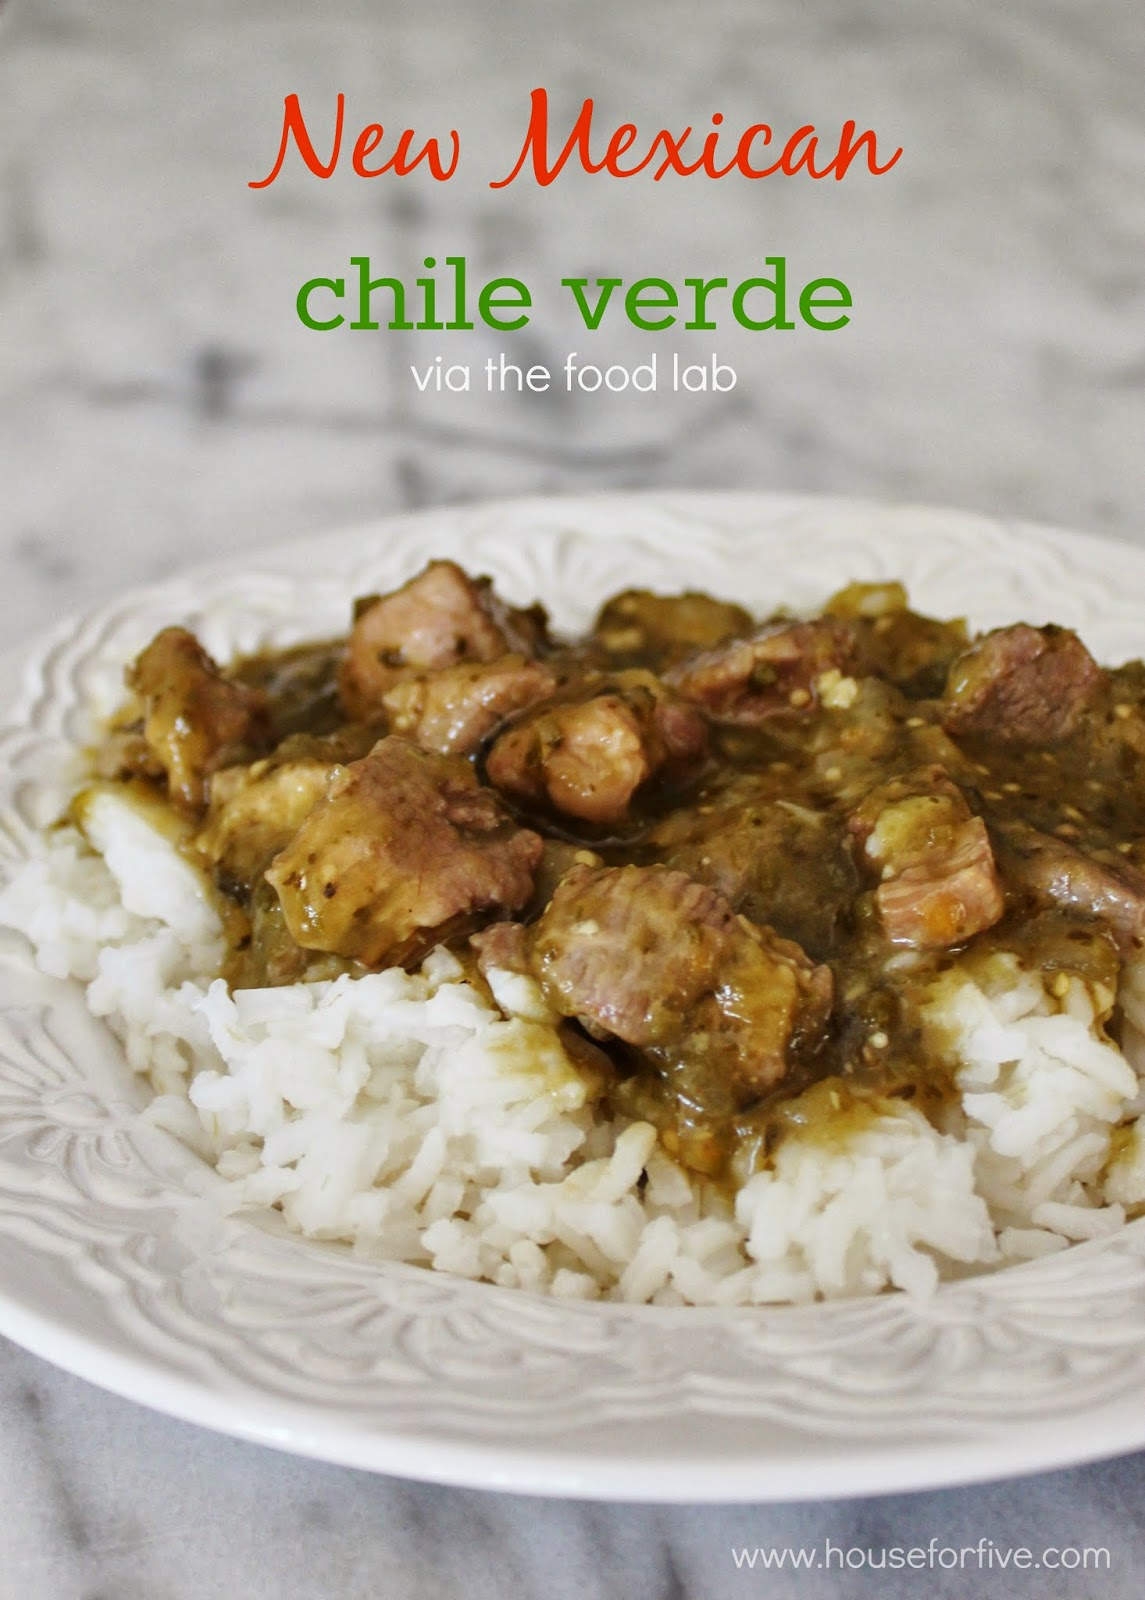 House For Five: New Mexican Chile Verde (Without the Hatch Chiles)